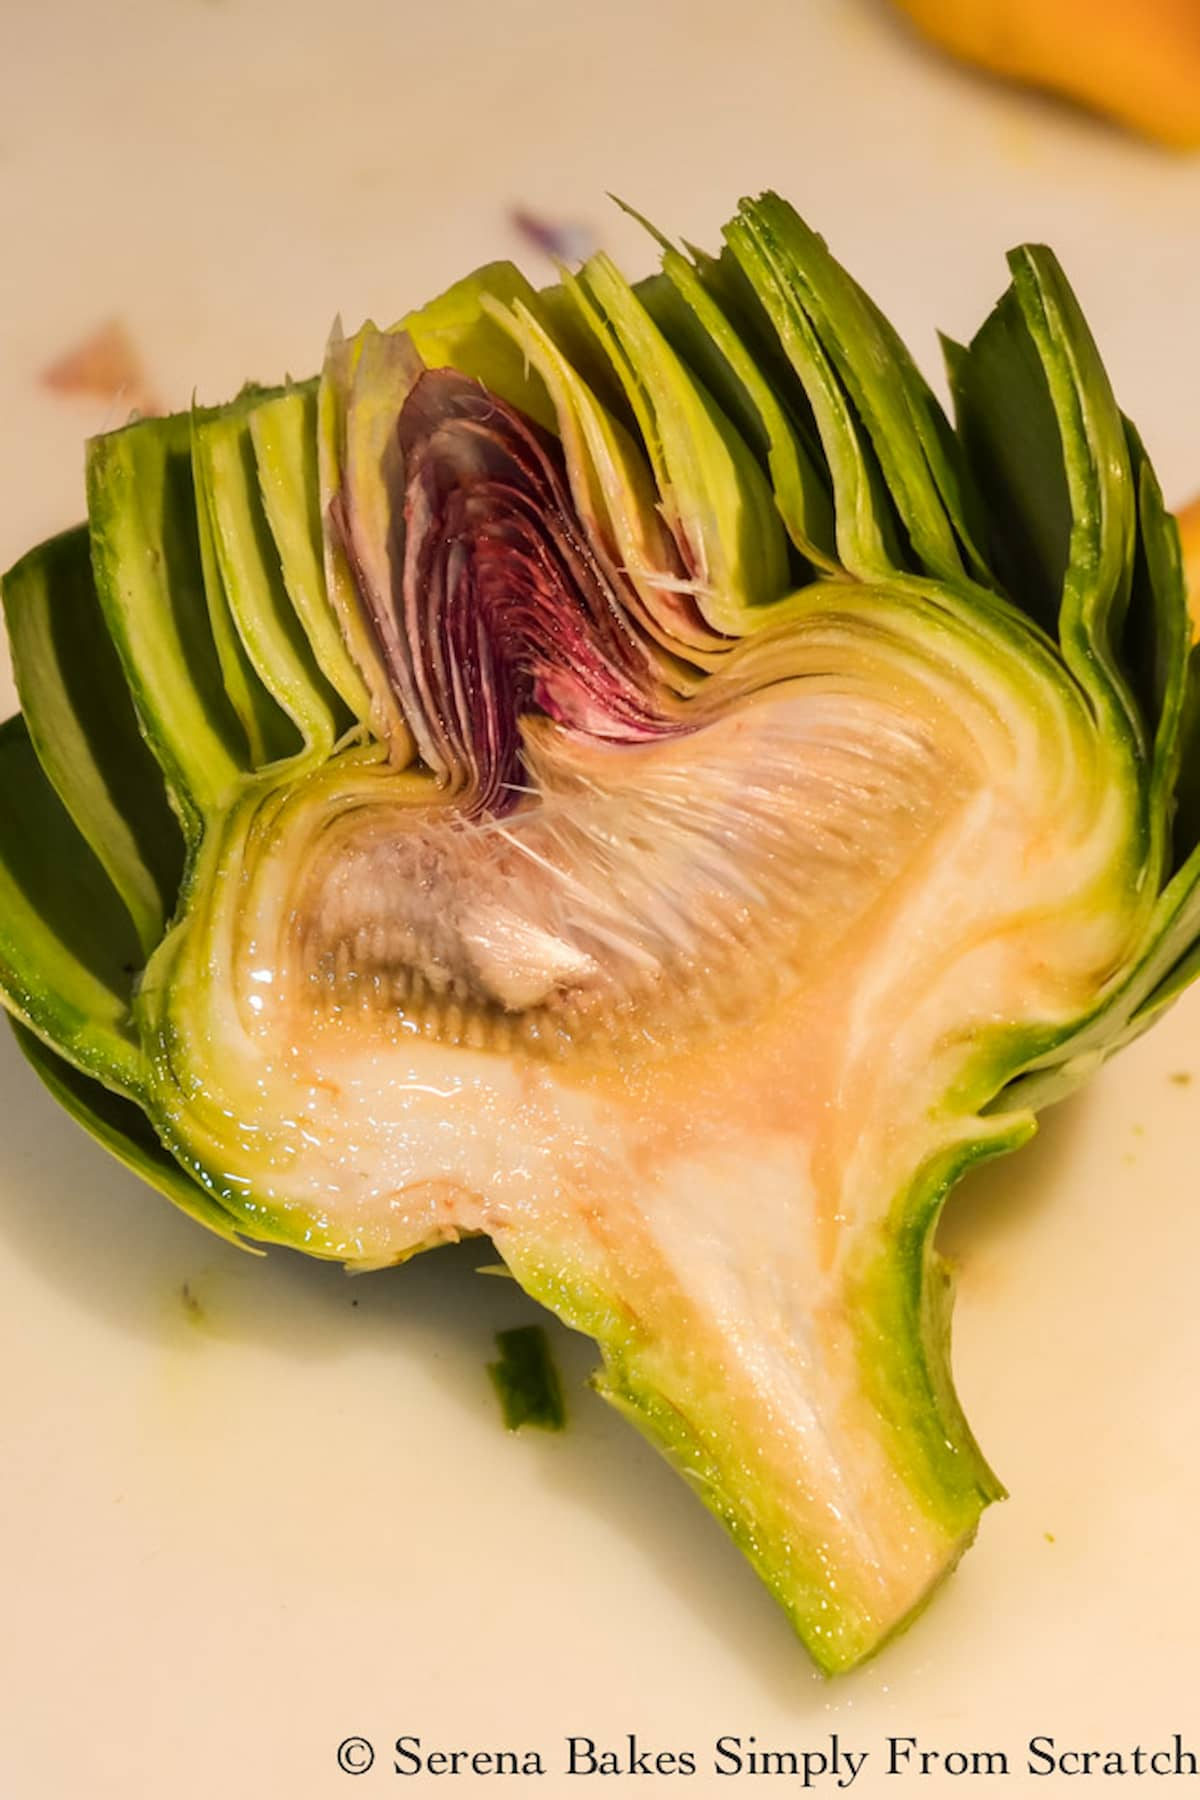 An Artichoke cut in half with the cut side up exposing the fuzzy center.